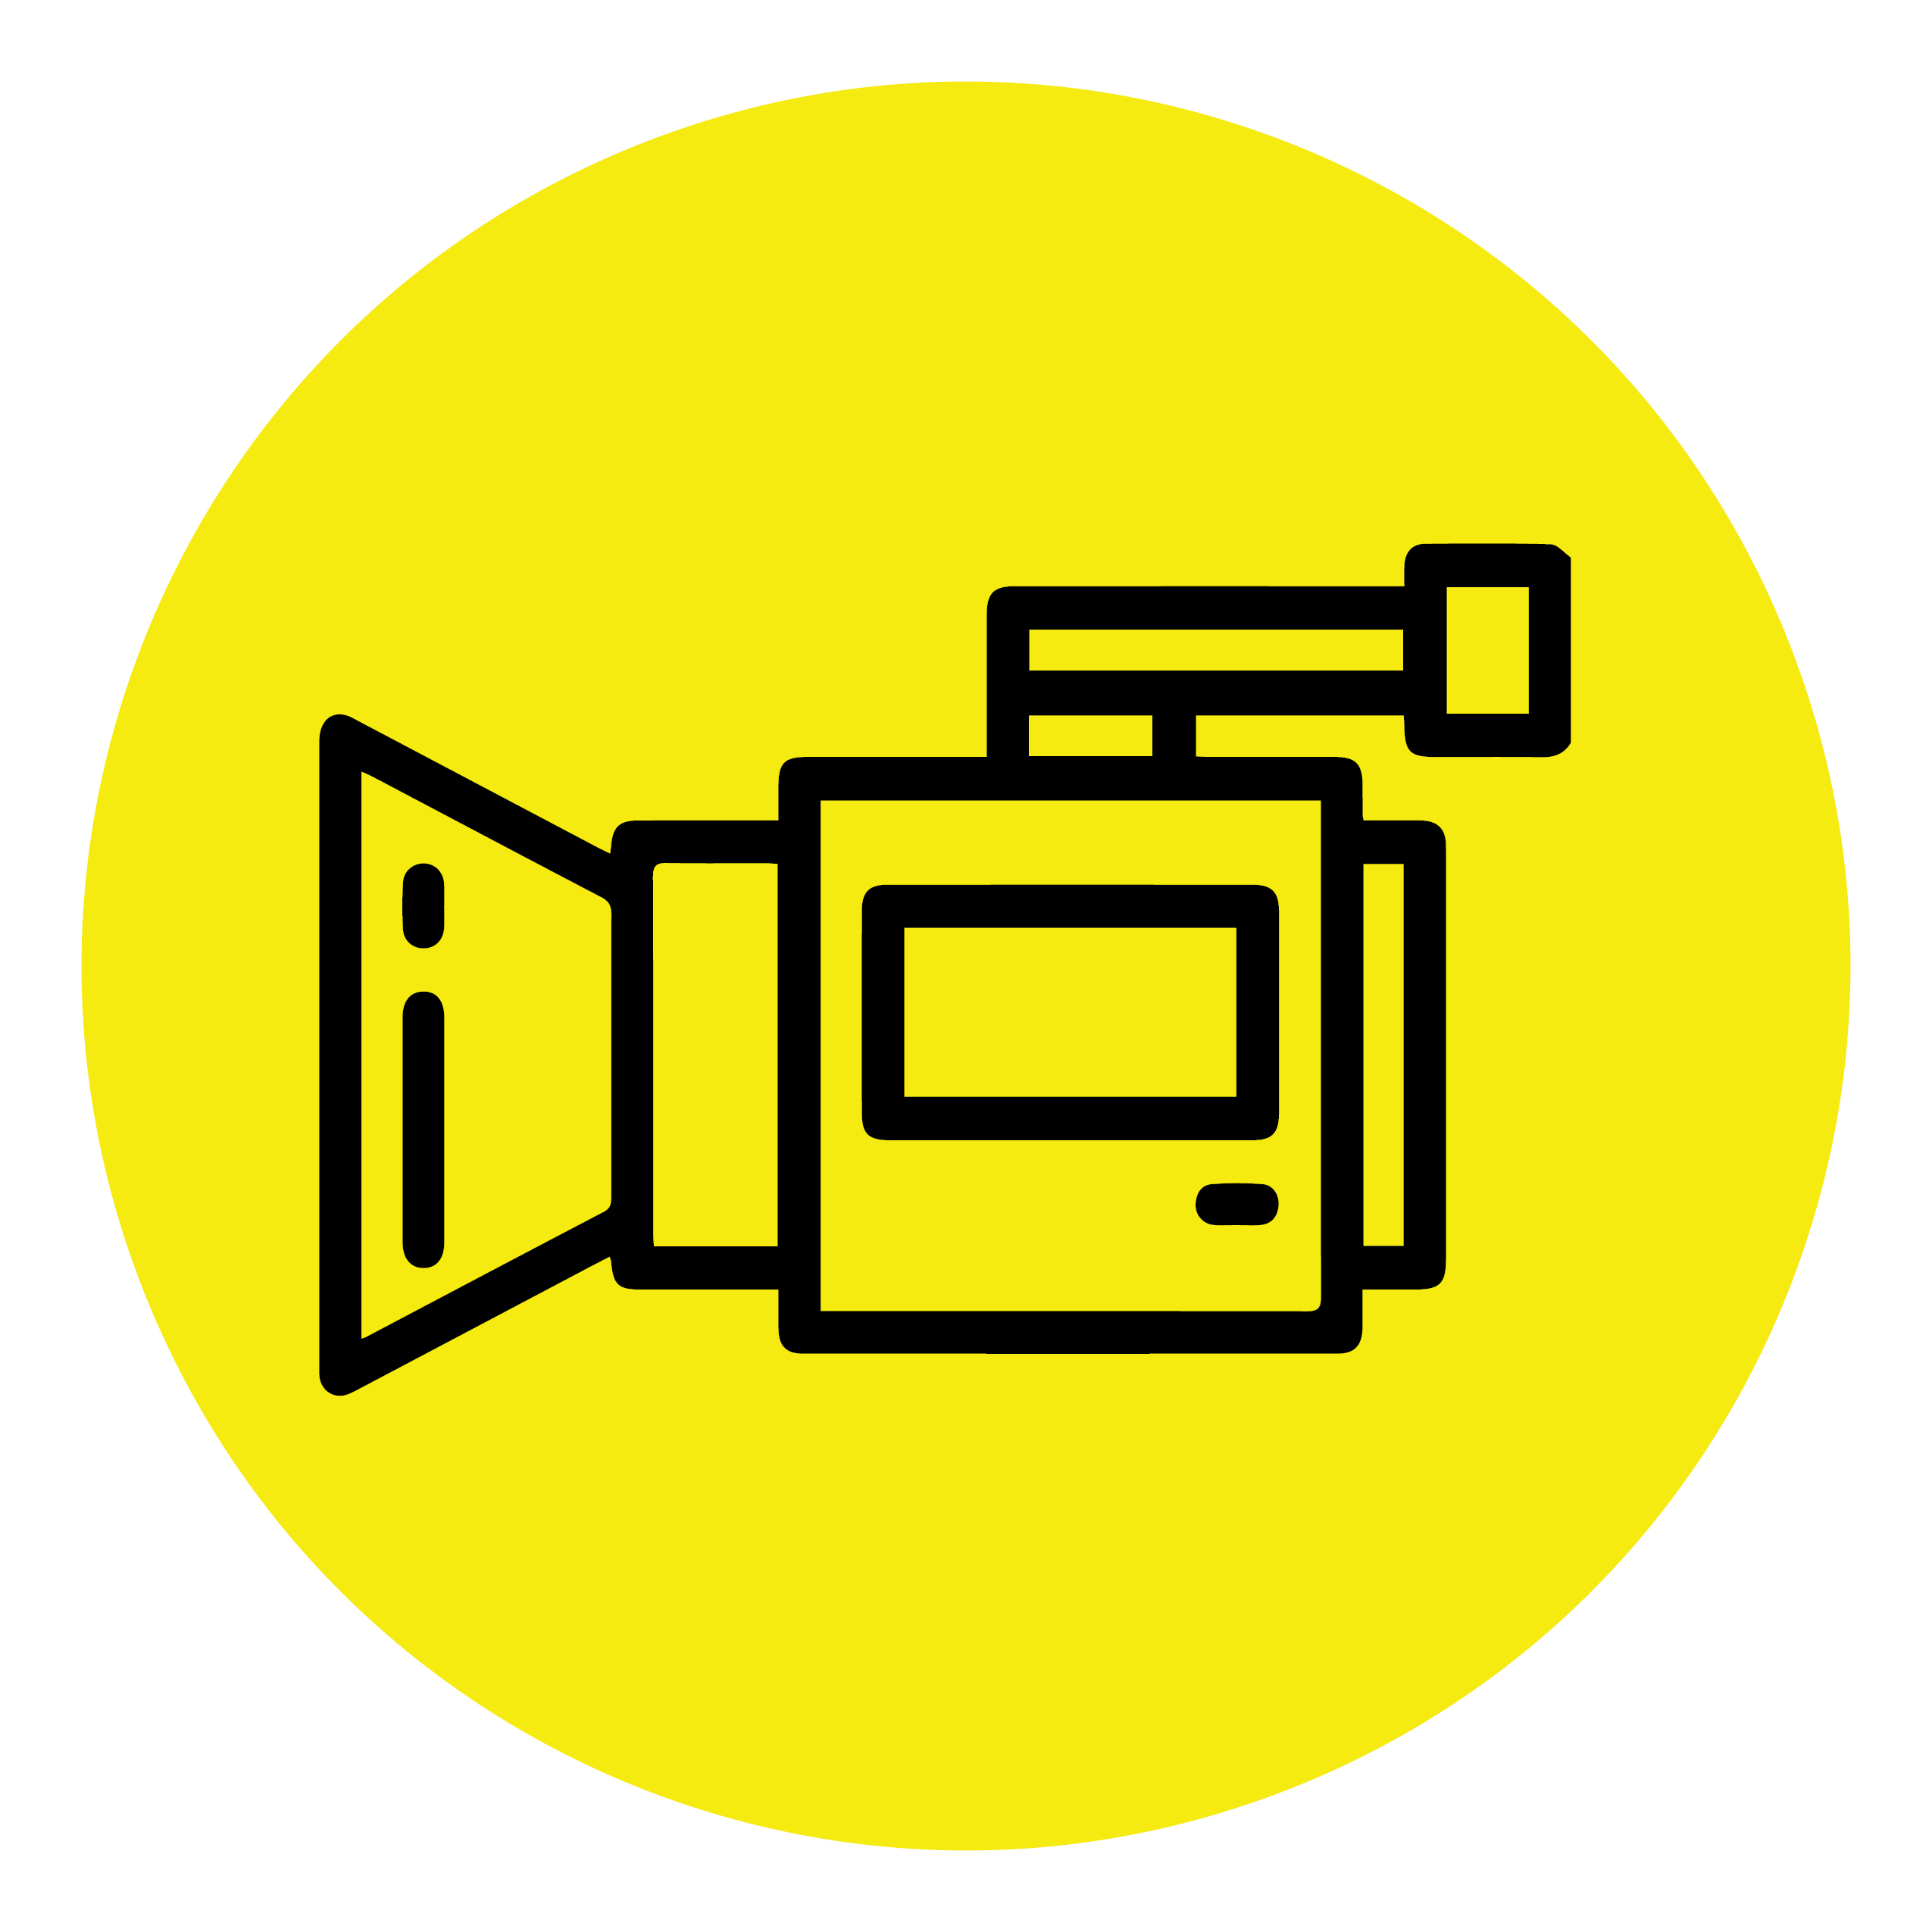 A yellow circle contains the image of a video camera